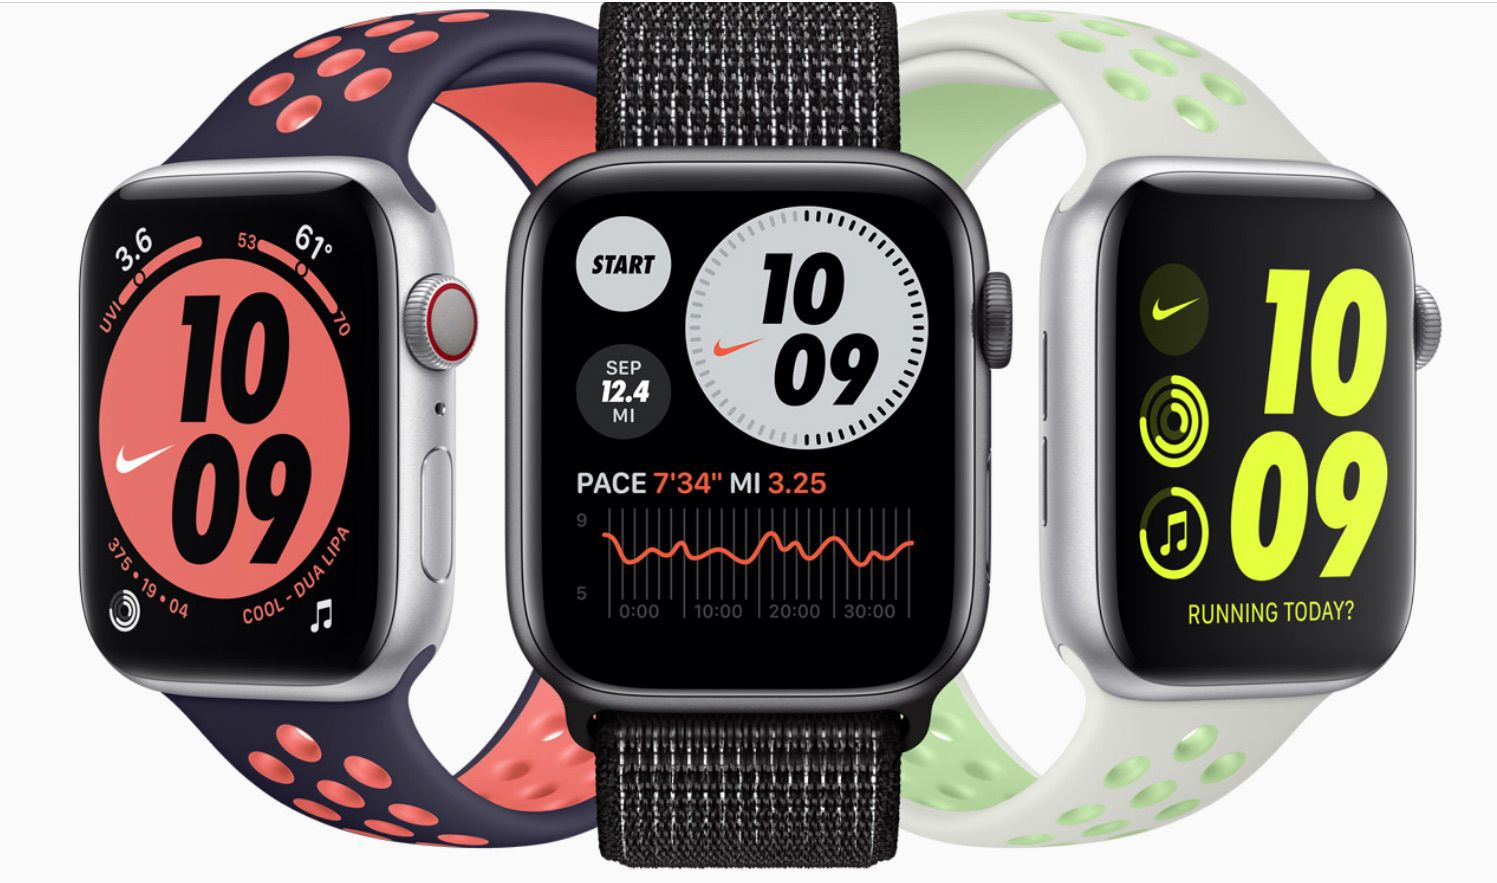 The Apple Watch Nike, part of the 6 Series line